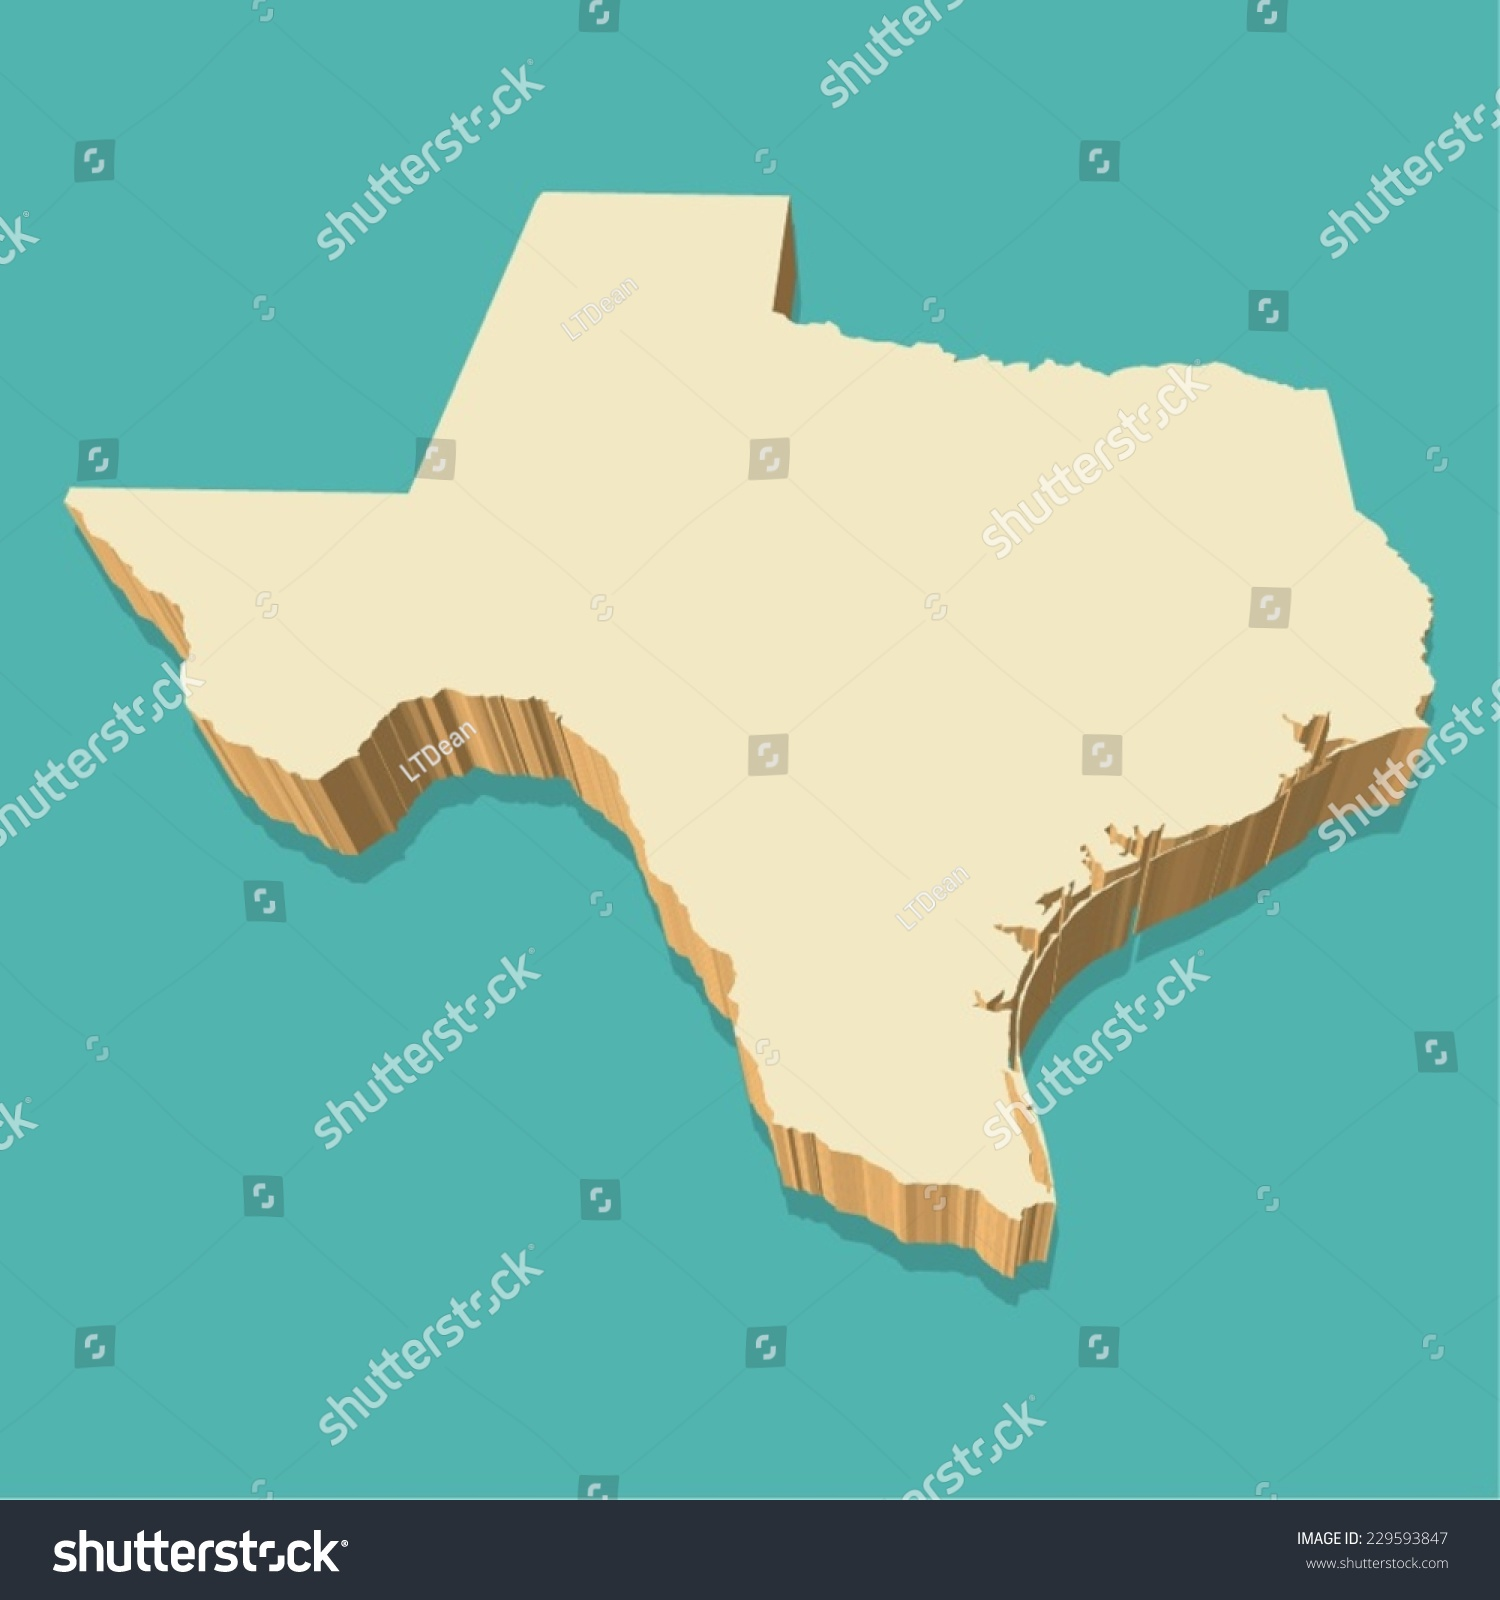 Texas State Maps USA Maps Of Texas TX Map Of Texas In The USA - Texas usa map